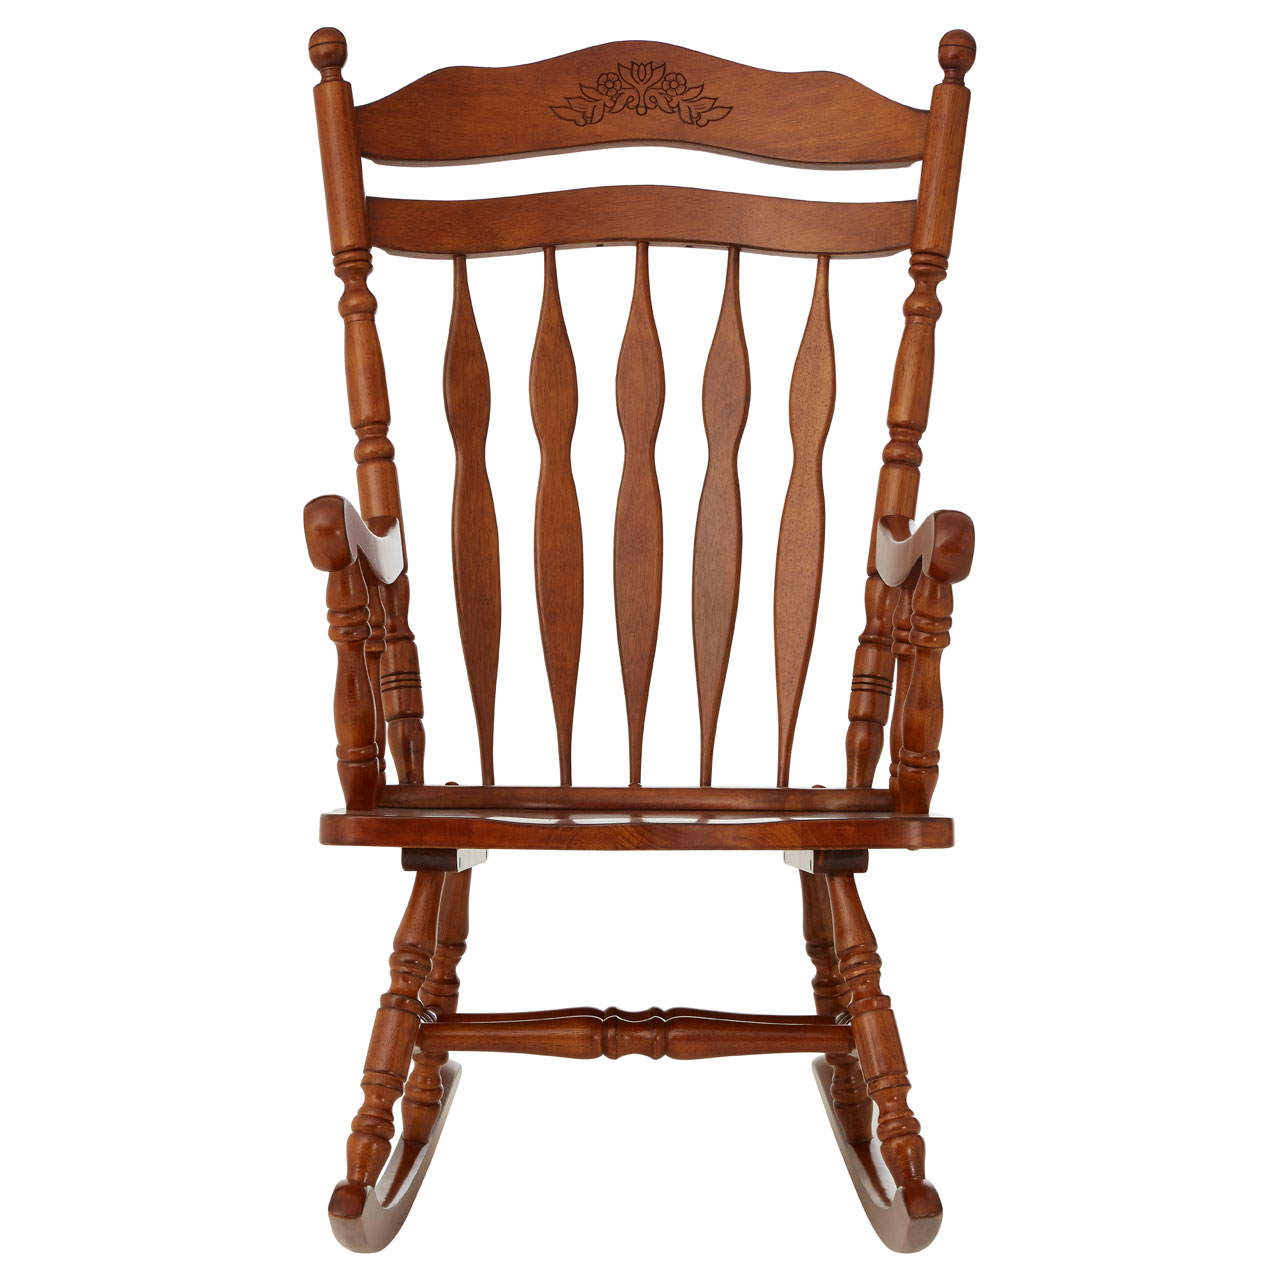 Details about rubberwood rocking chair nursery stool furniture oak plywood rustic brown glider